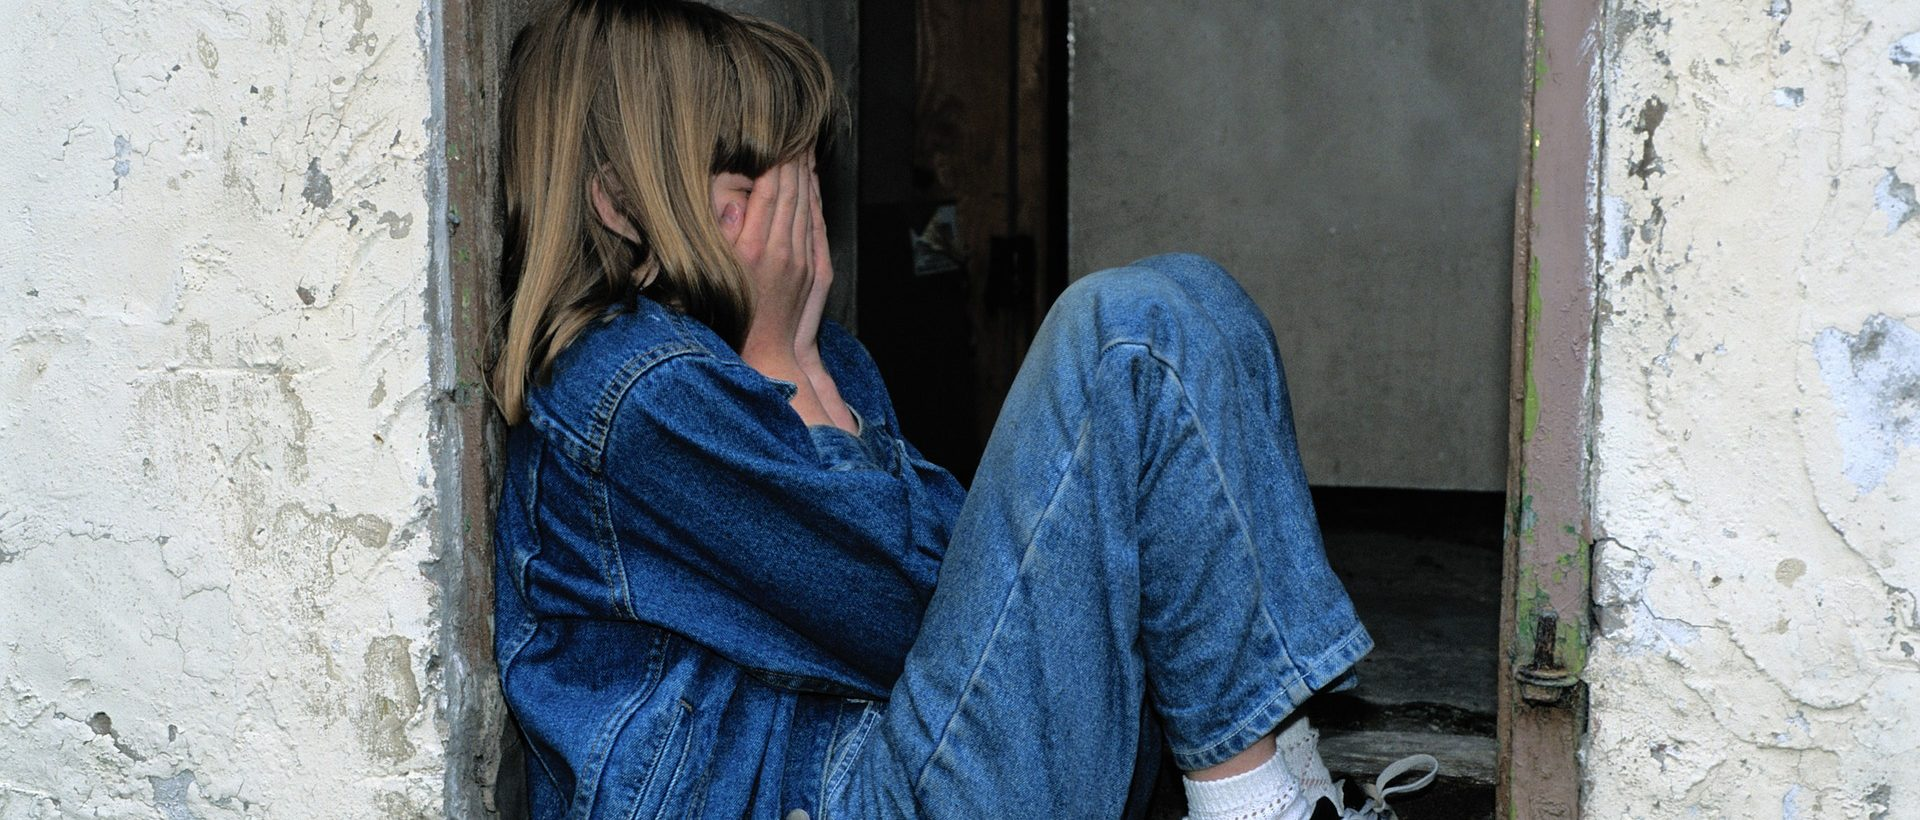 New tenancy laws protecting victims of family and domestic violence